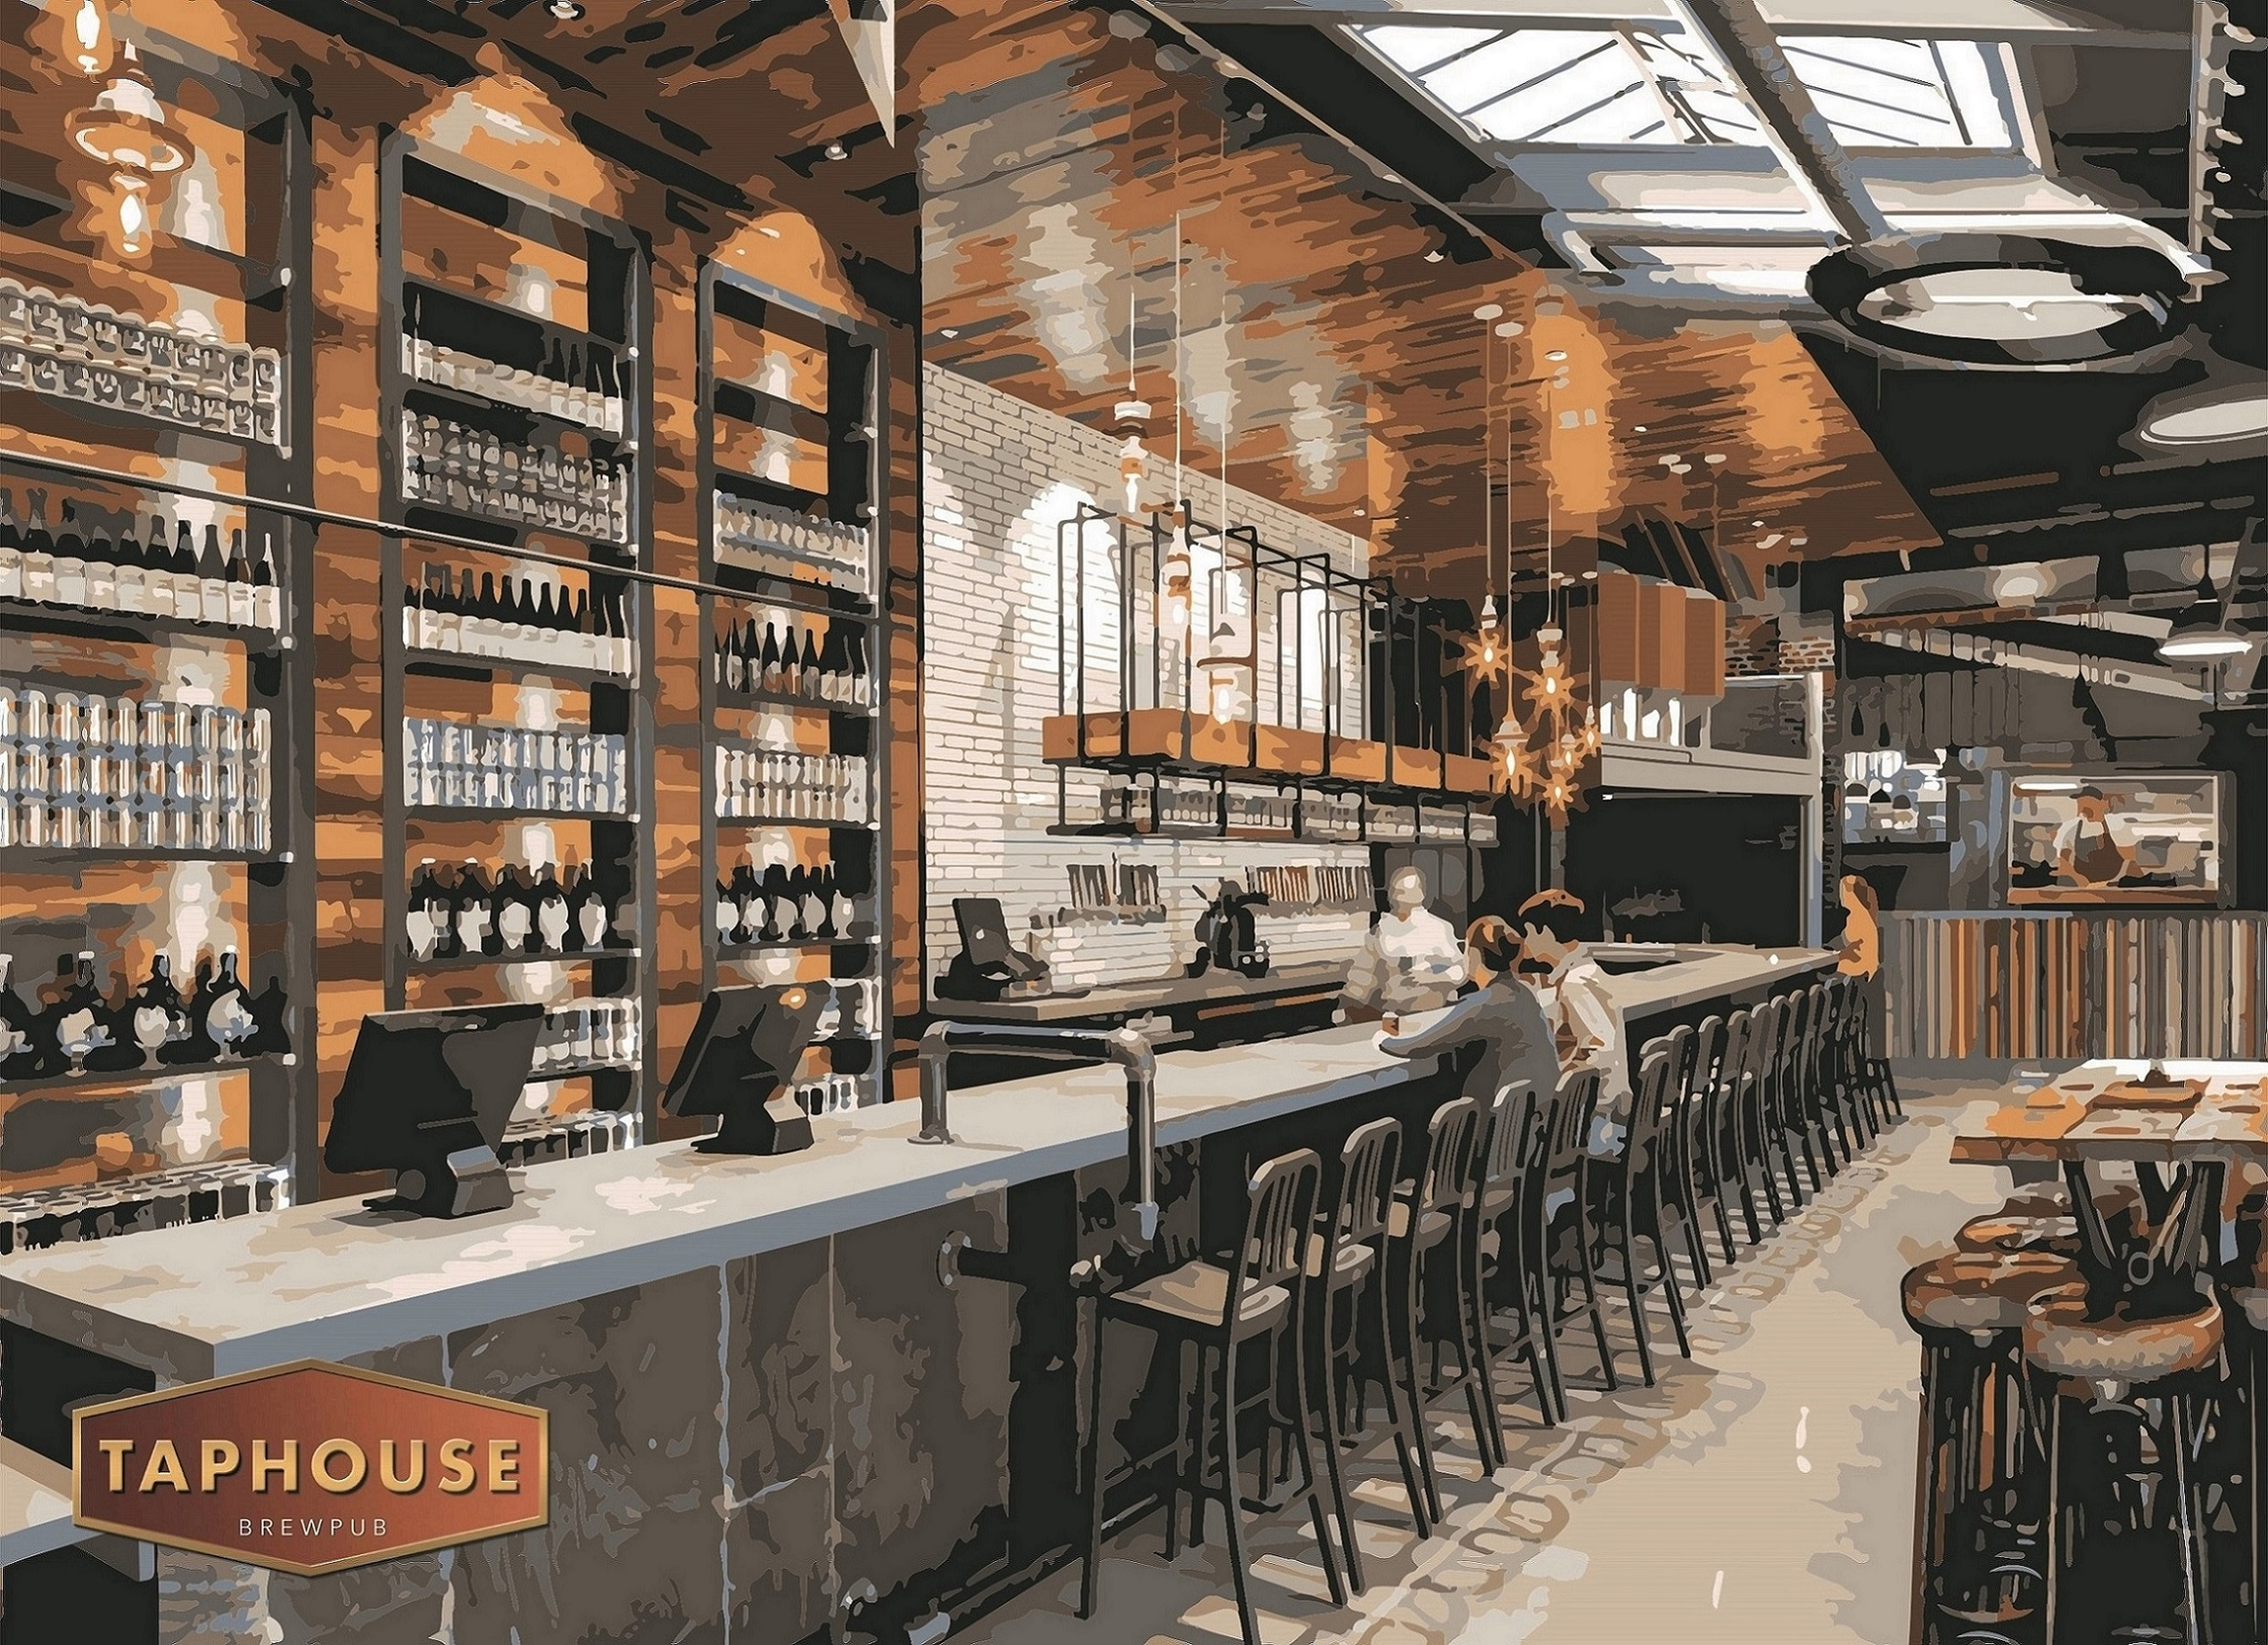 Taphouse Brewpub bar CGI